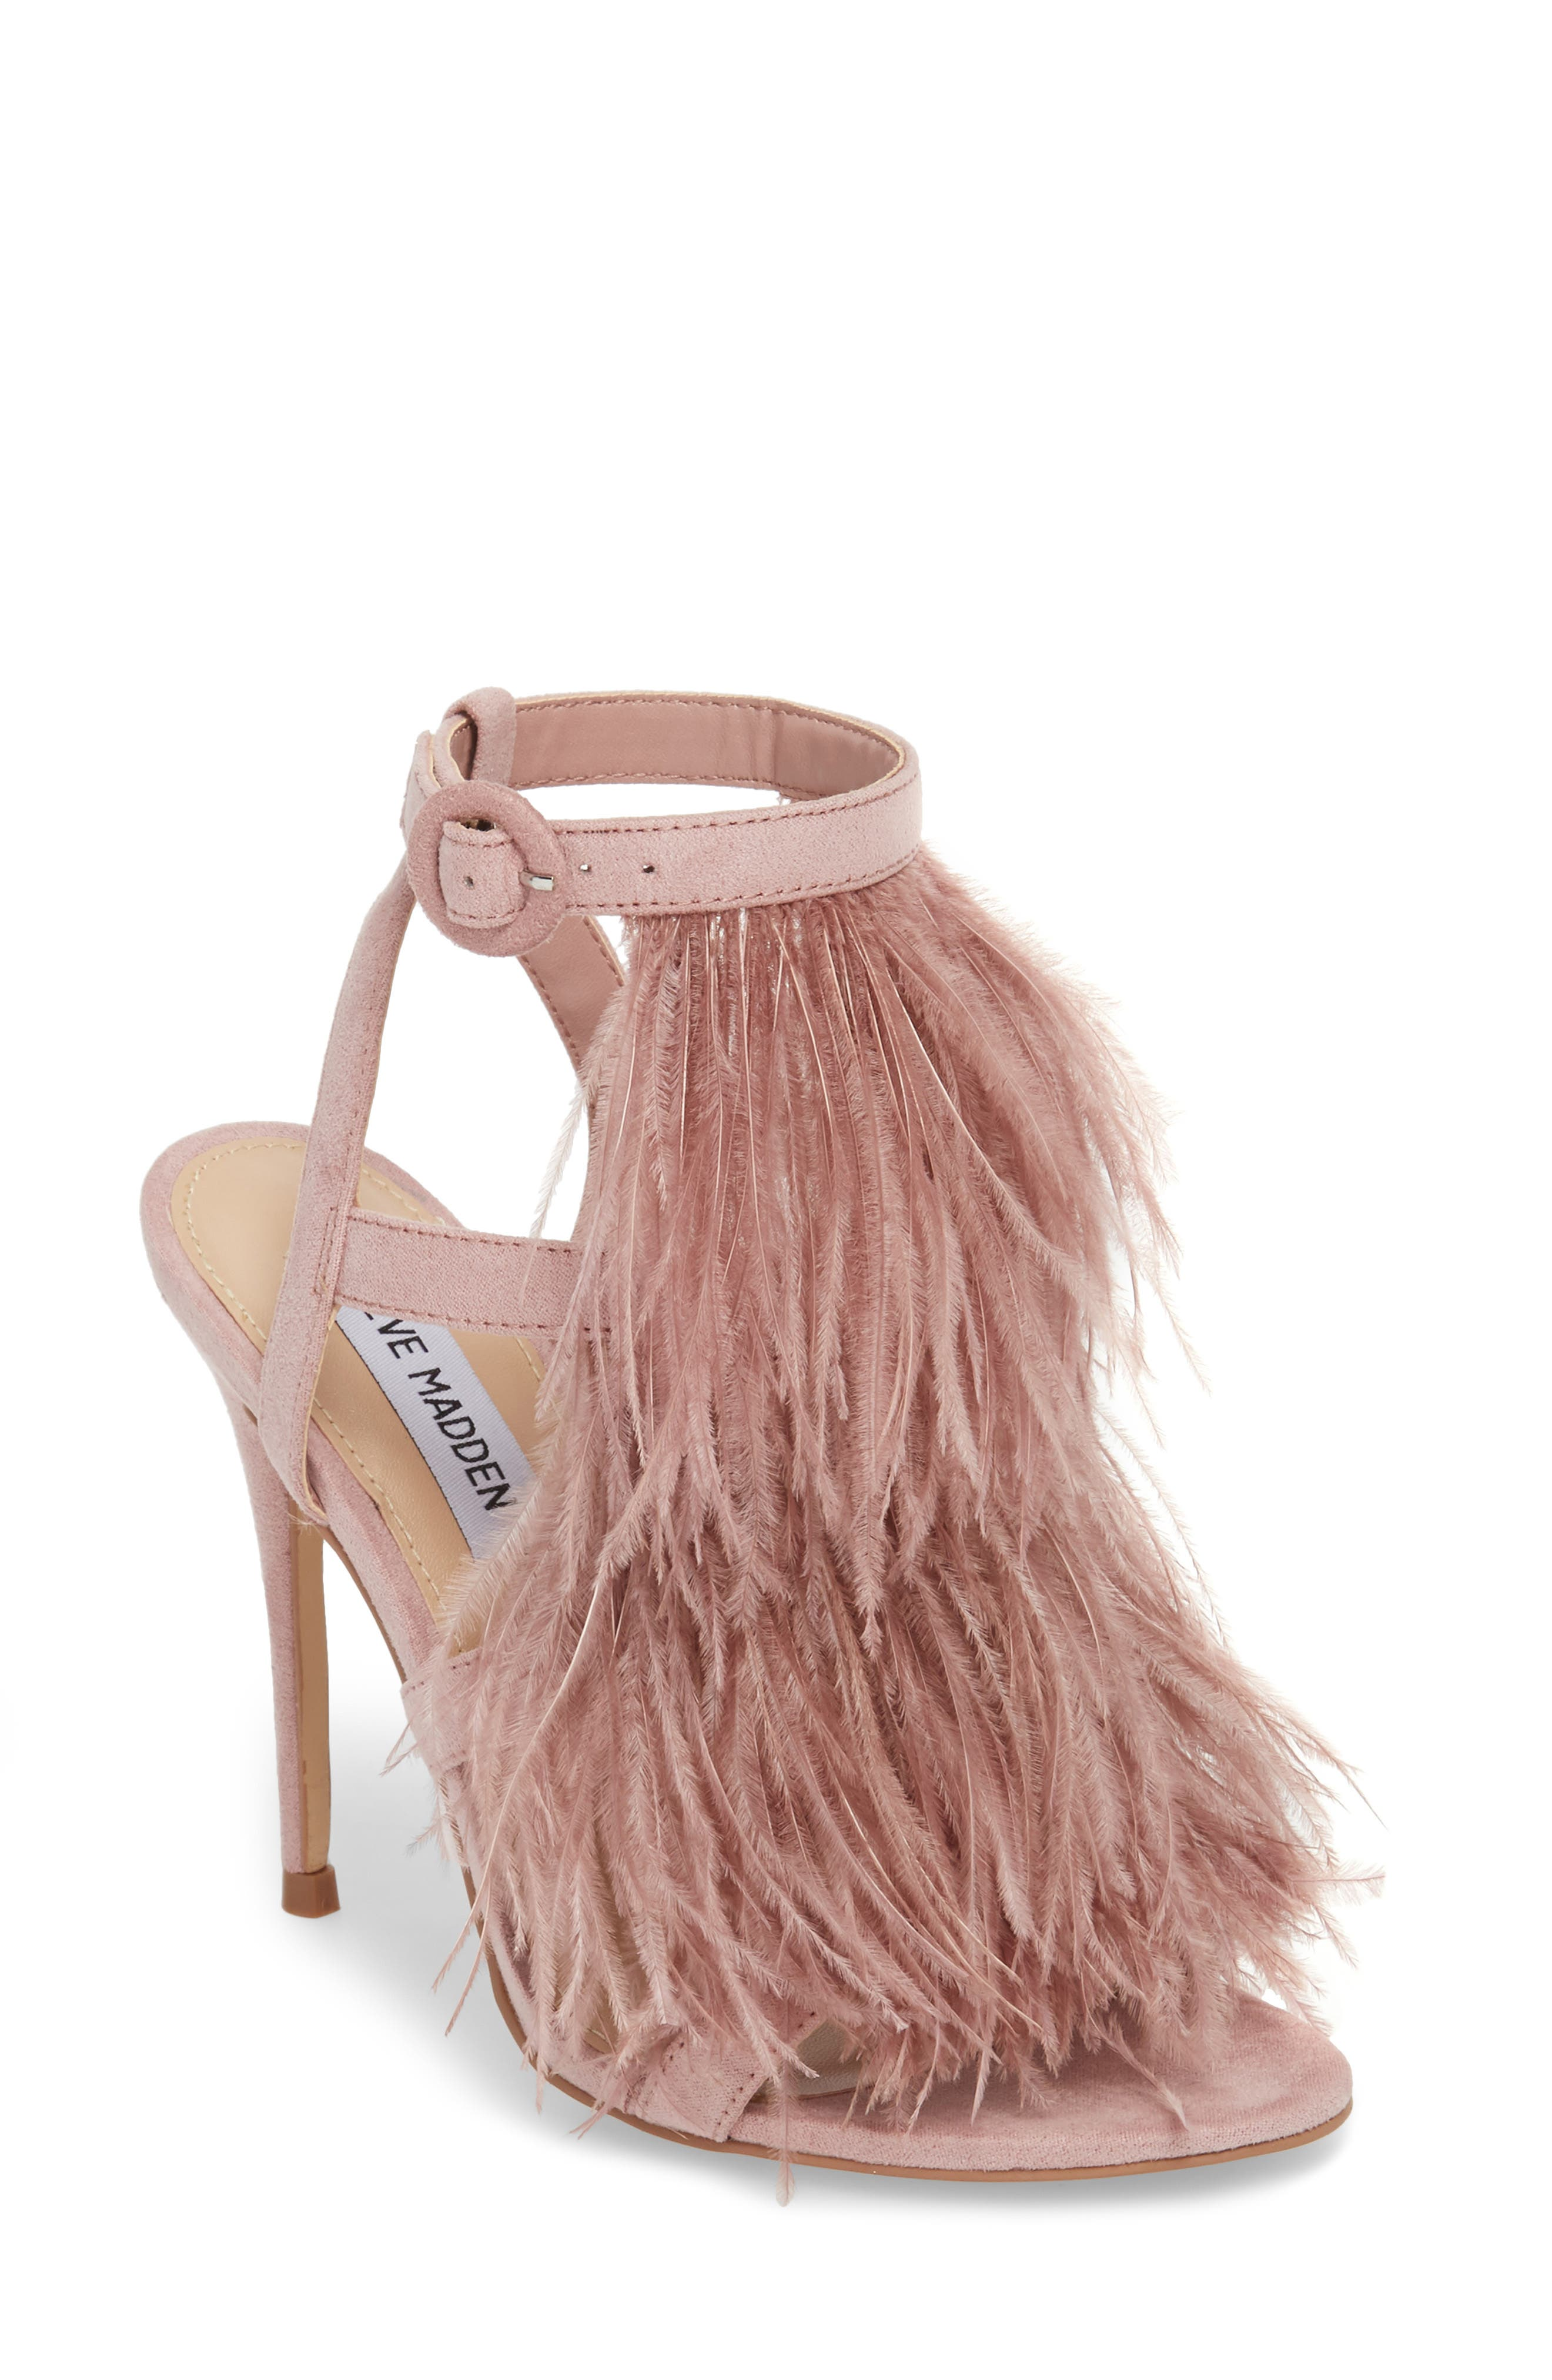 FEFE FEATHER SANDAL